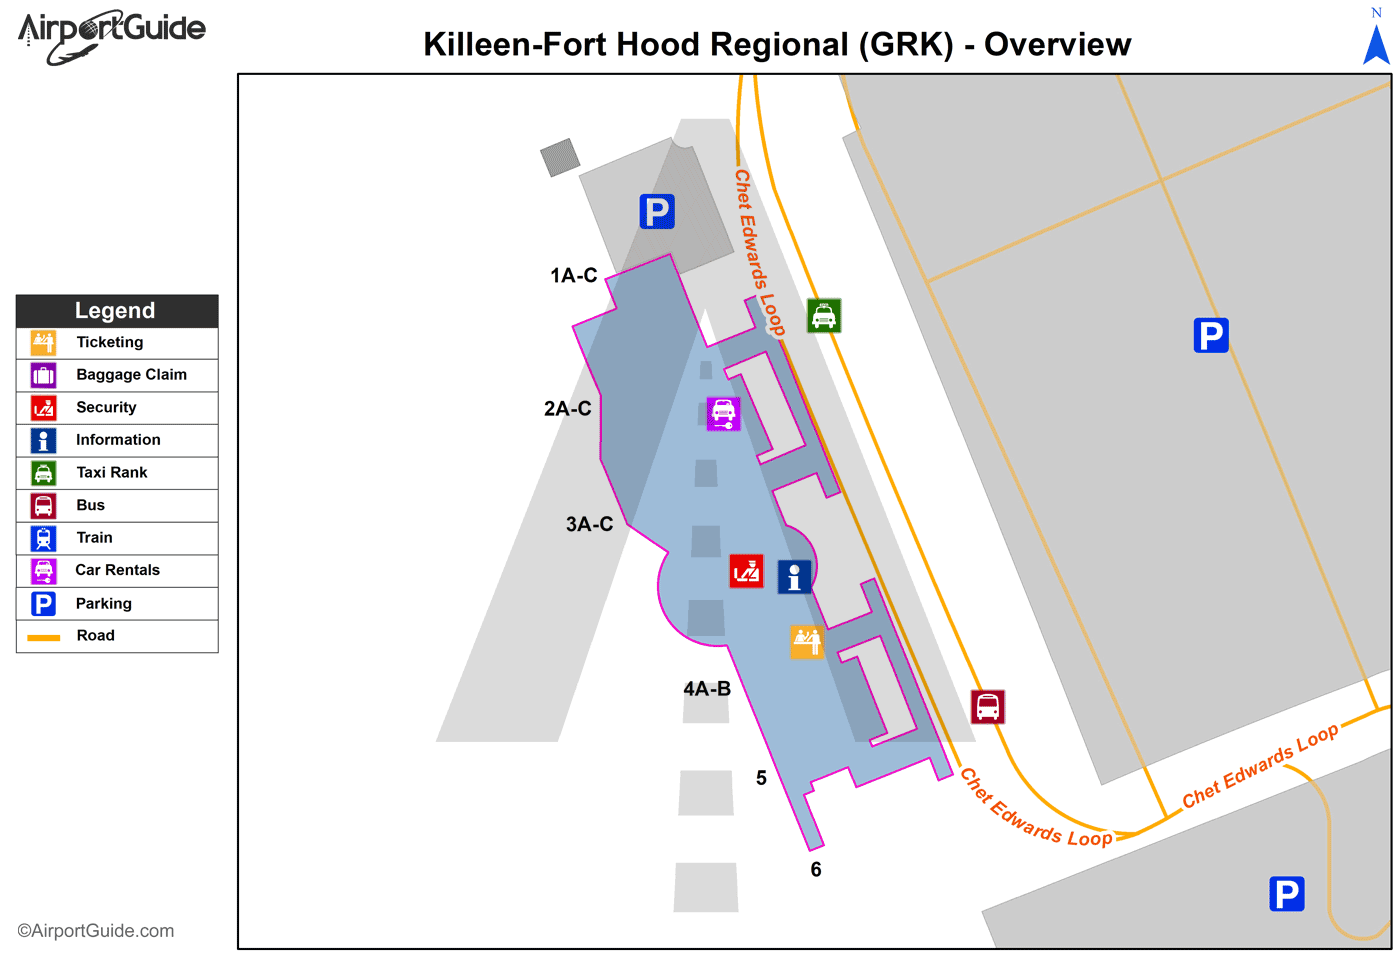 Fort Hood/Killeen - Robert Gray AAF (GRK) Airport Terminal Map - Overview